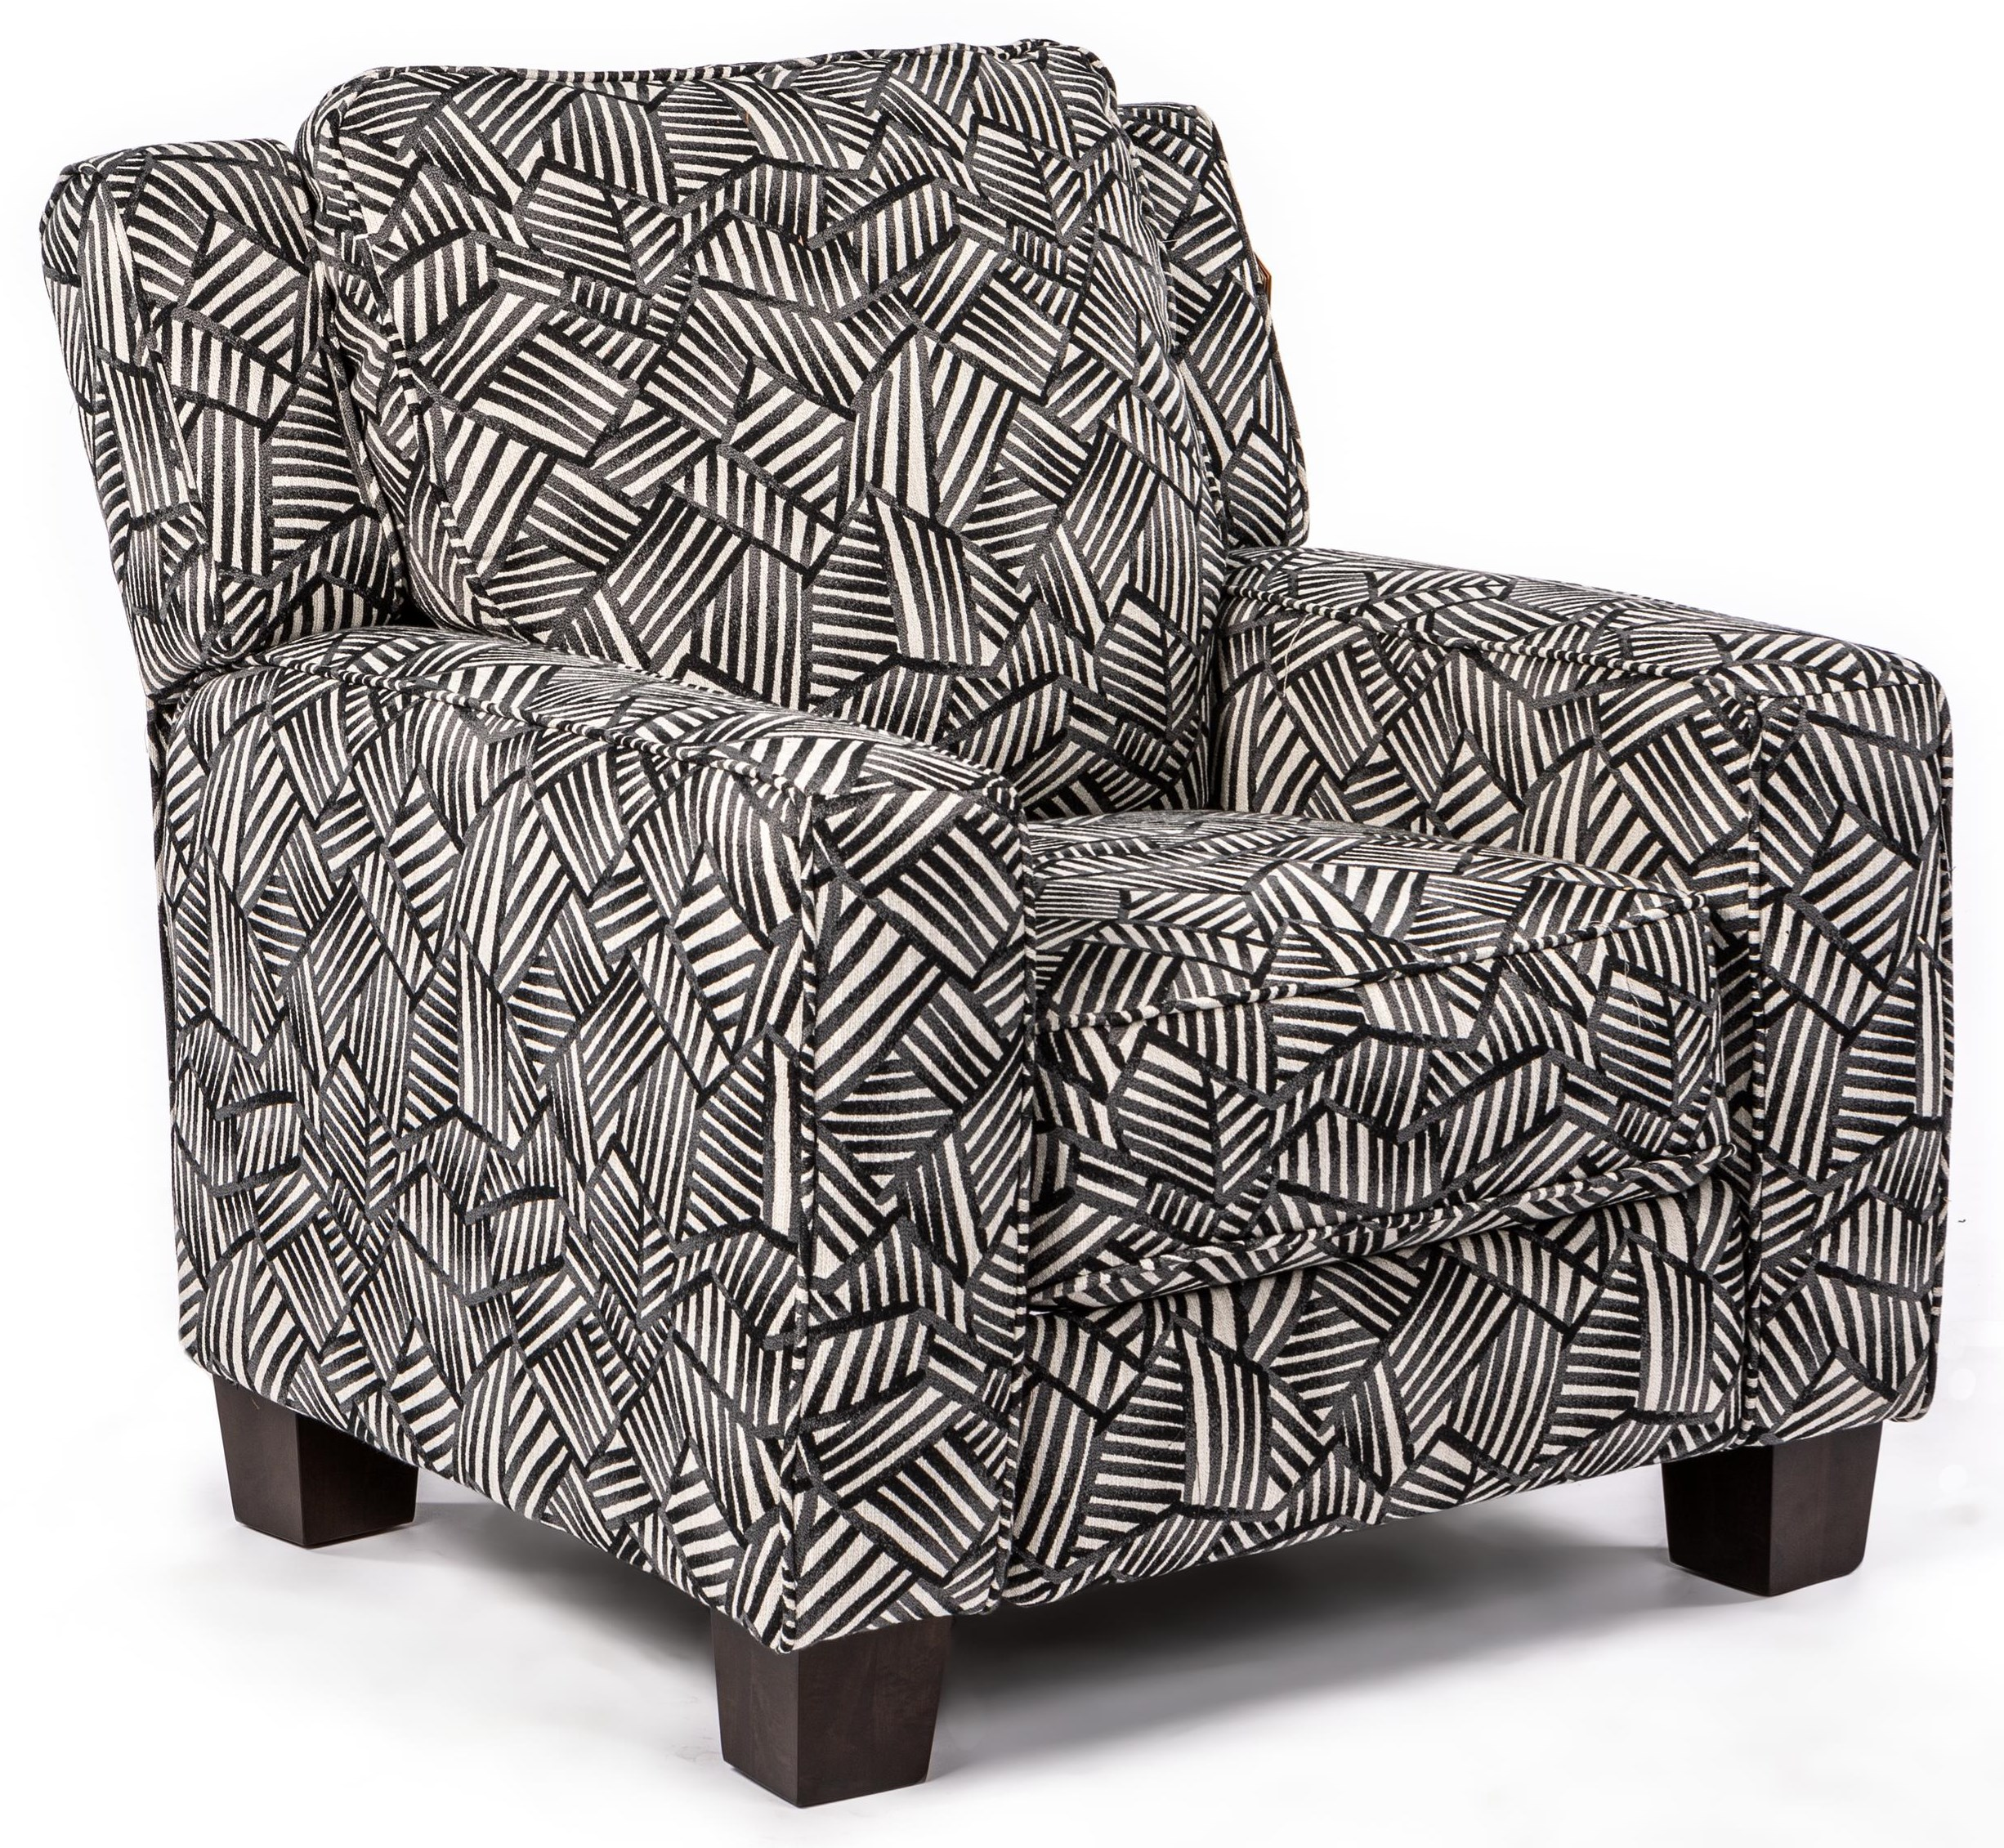 Cooper Power Headrest Hi-Leg Recliner by Southern Motion at Crowley Furniture & Mattress